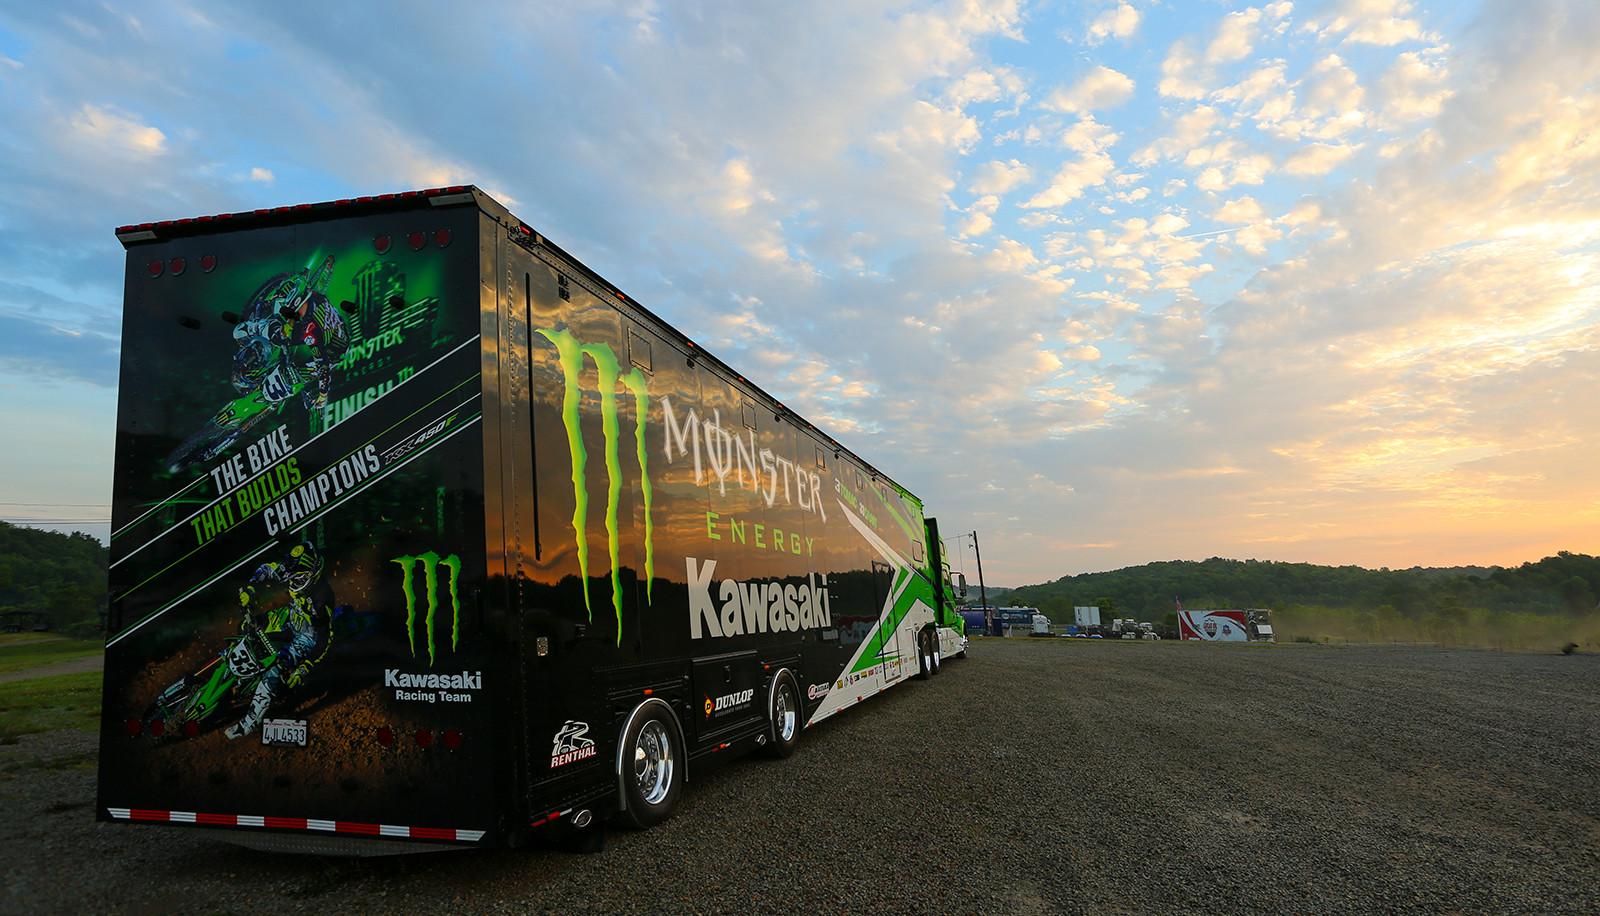 We caught this gorgeous sunrise on Thursday morning before press day, when the Monster Energy Kawasaki rig was looking pretty glorious.